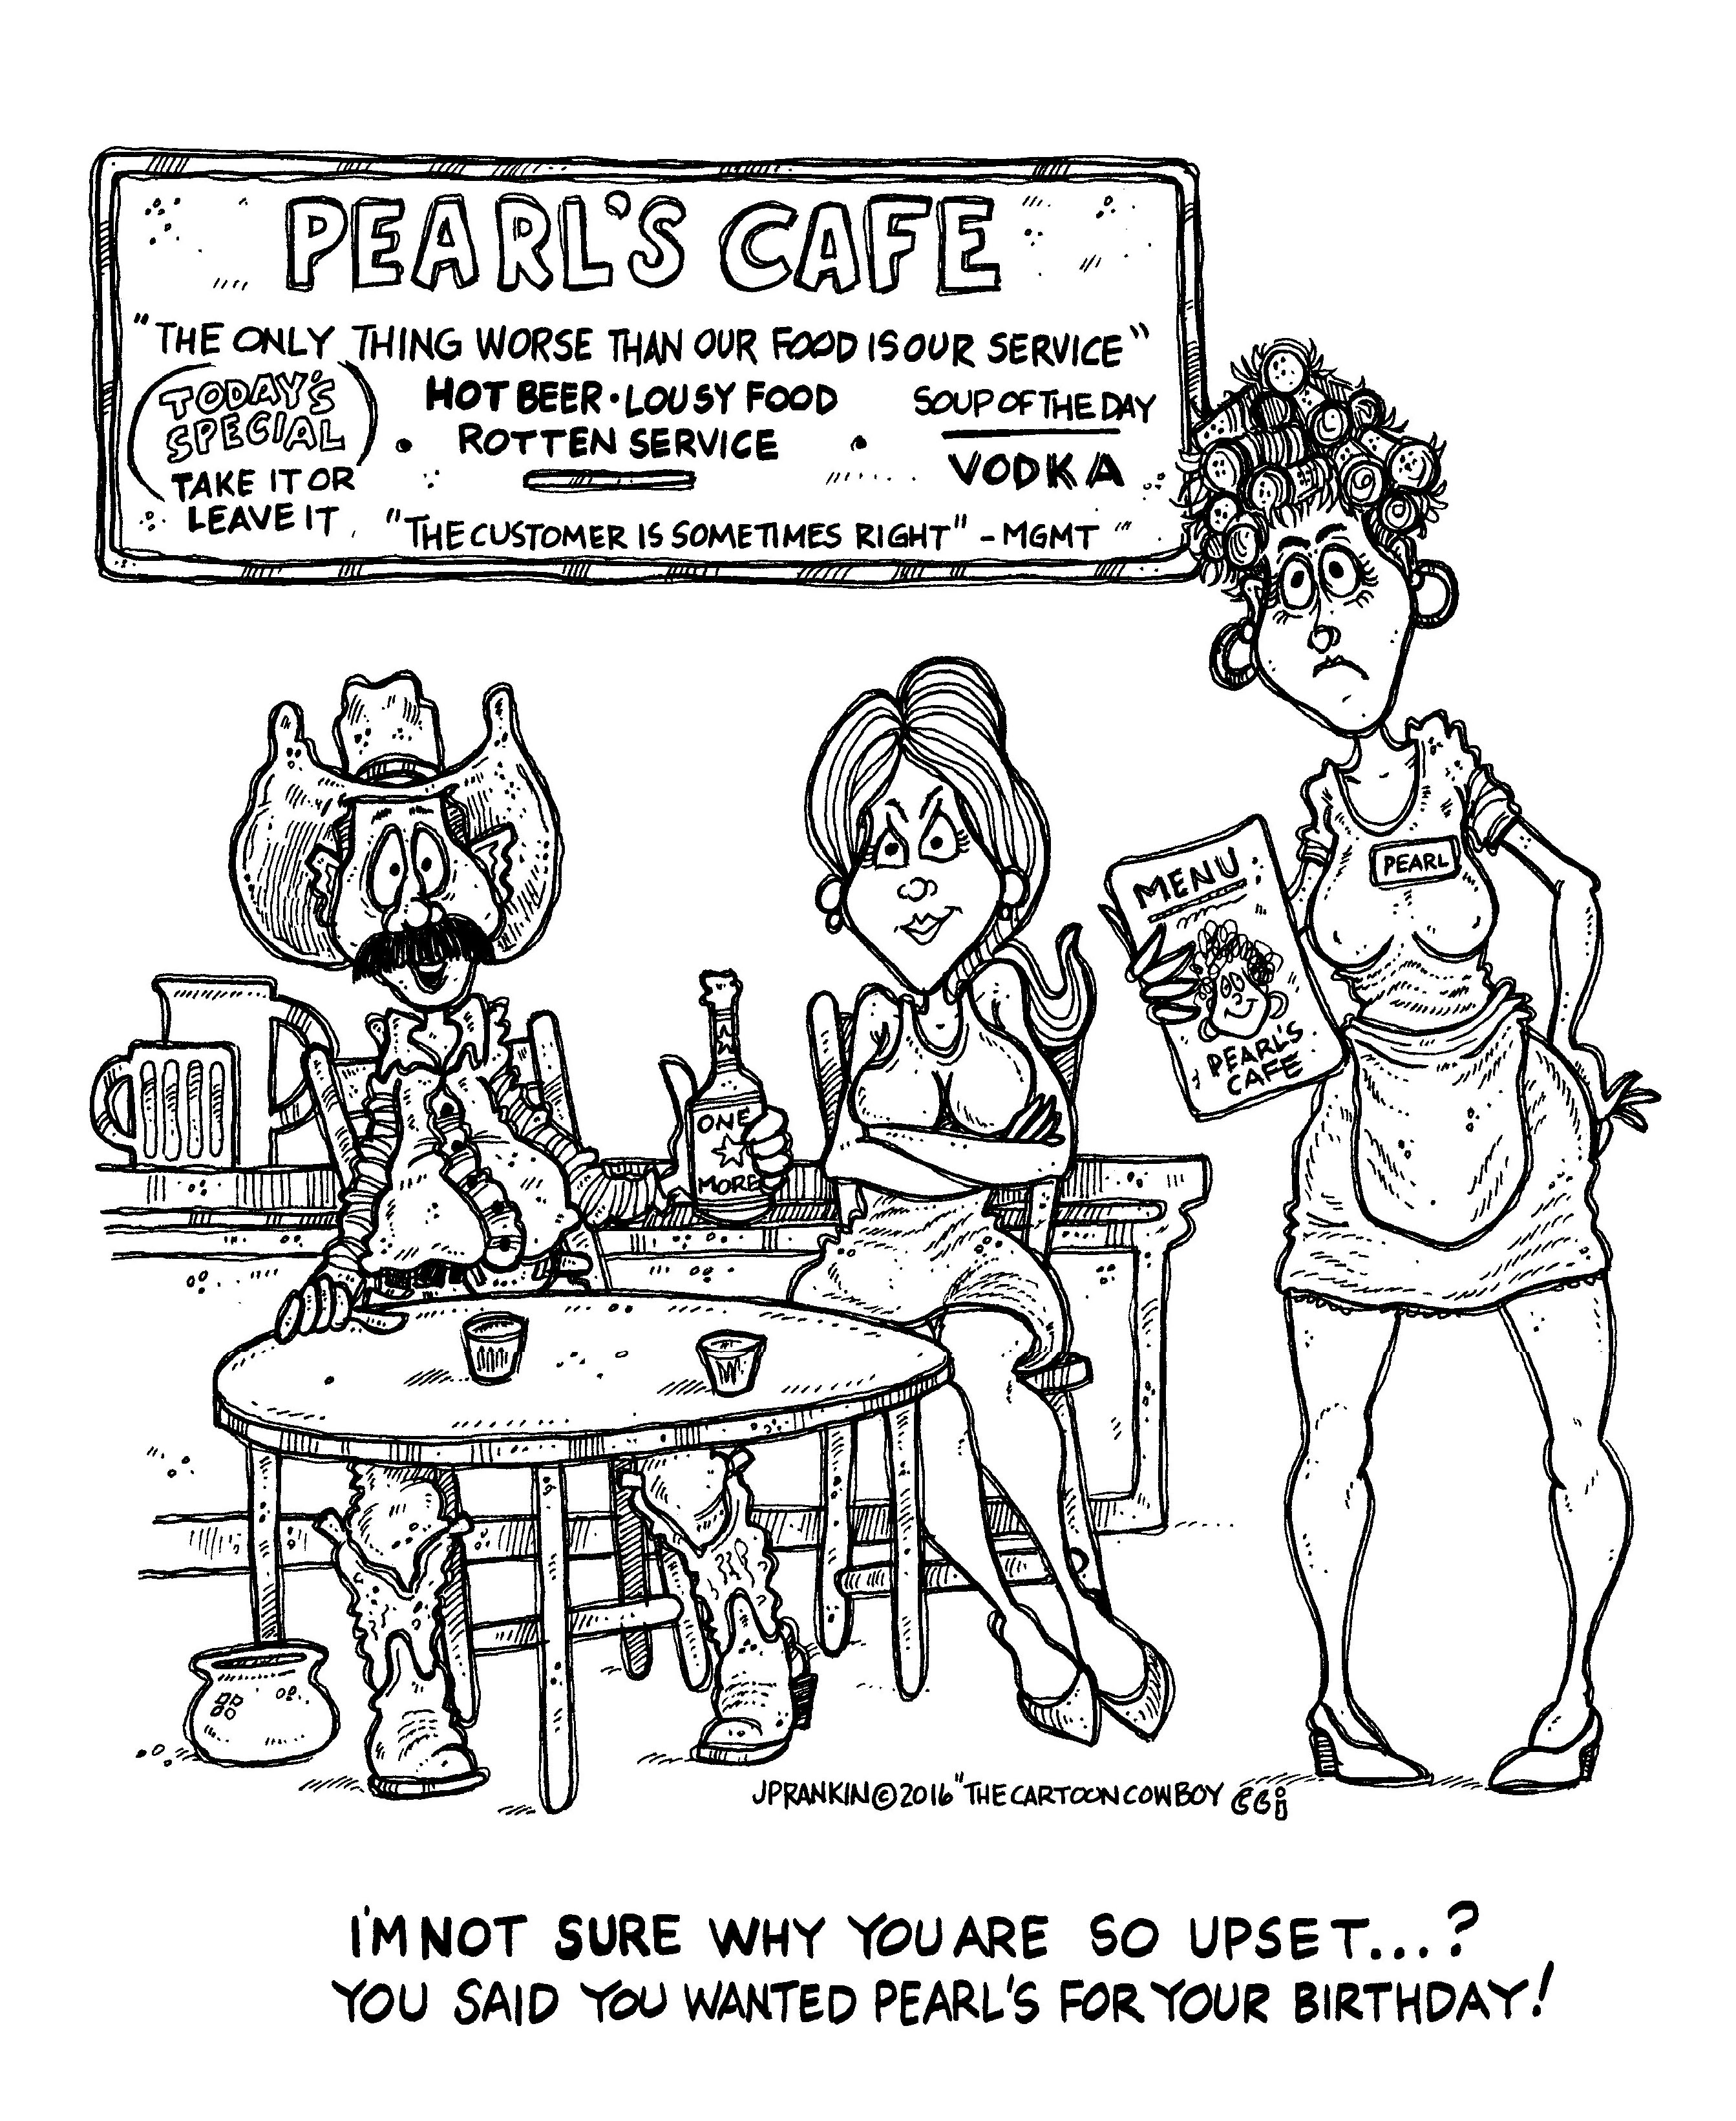 Pearls Cafe (1)